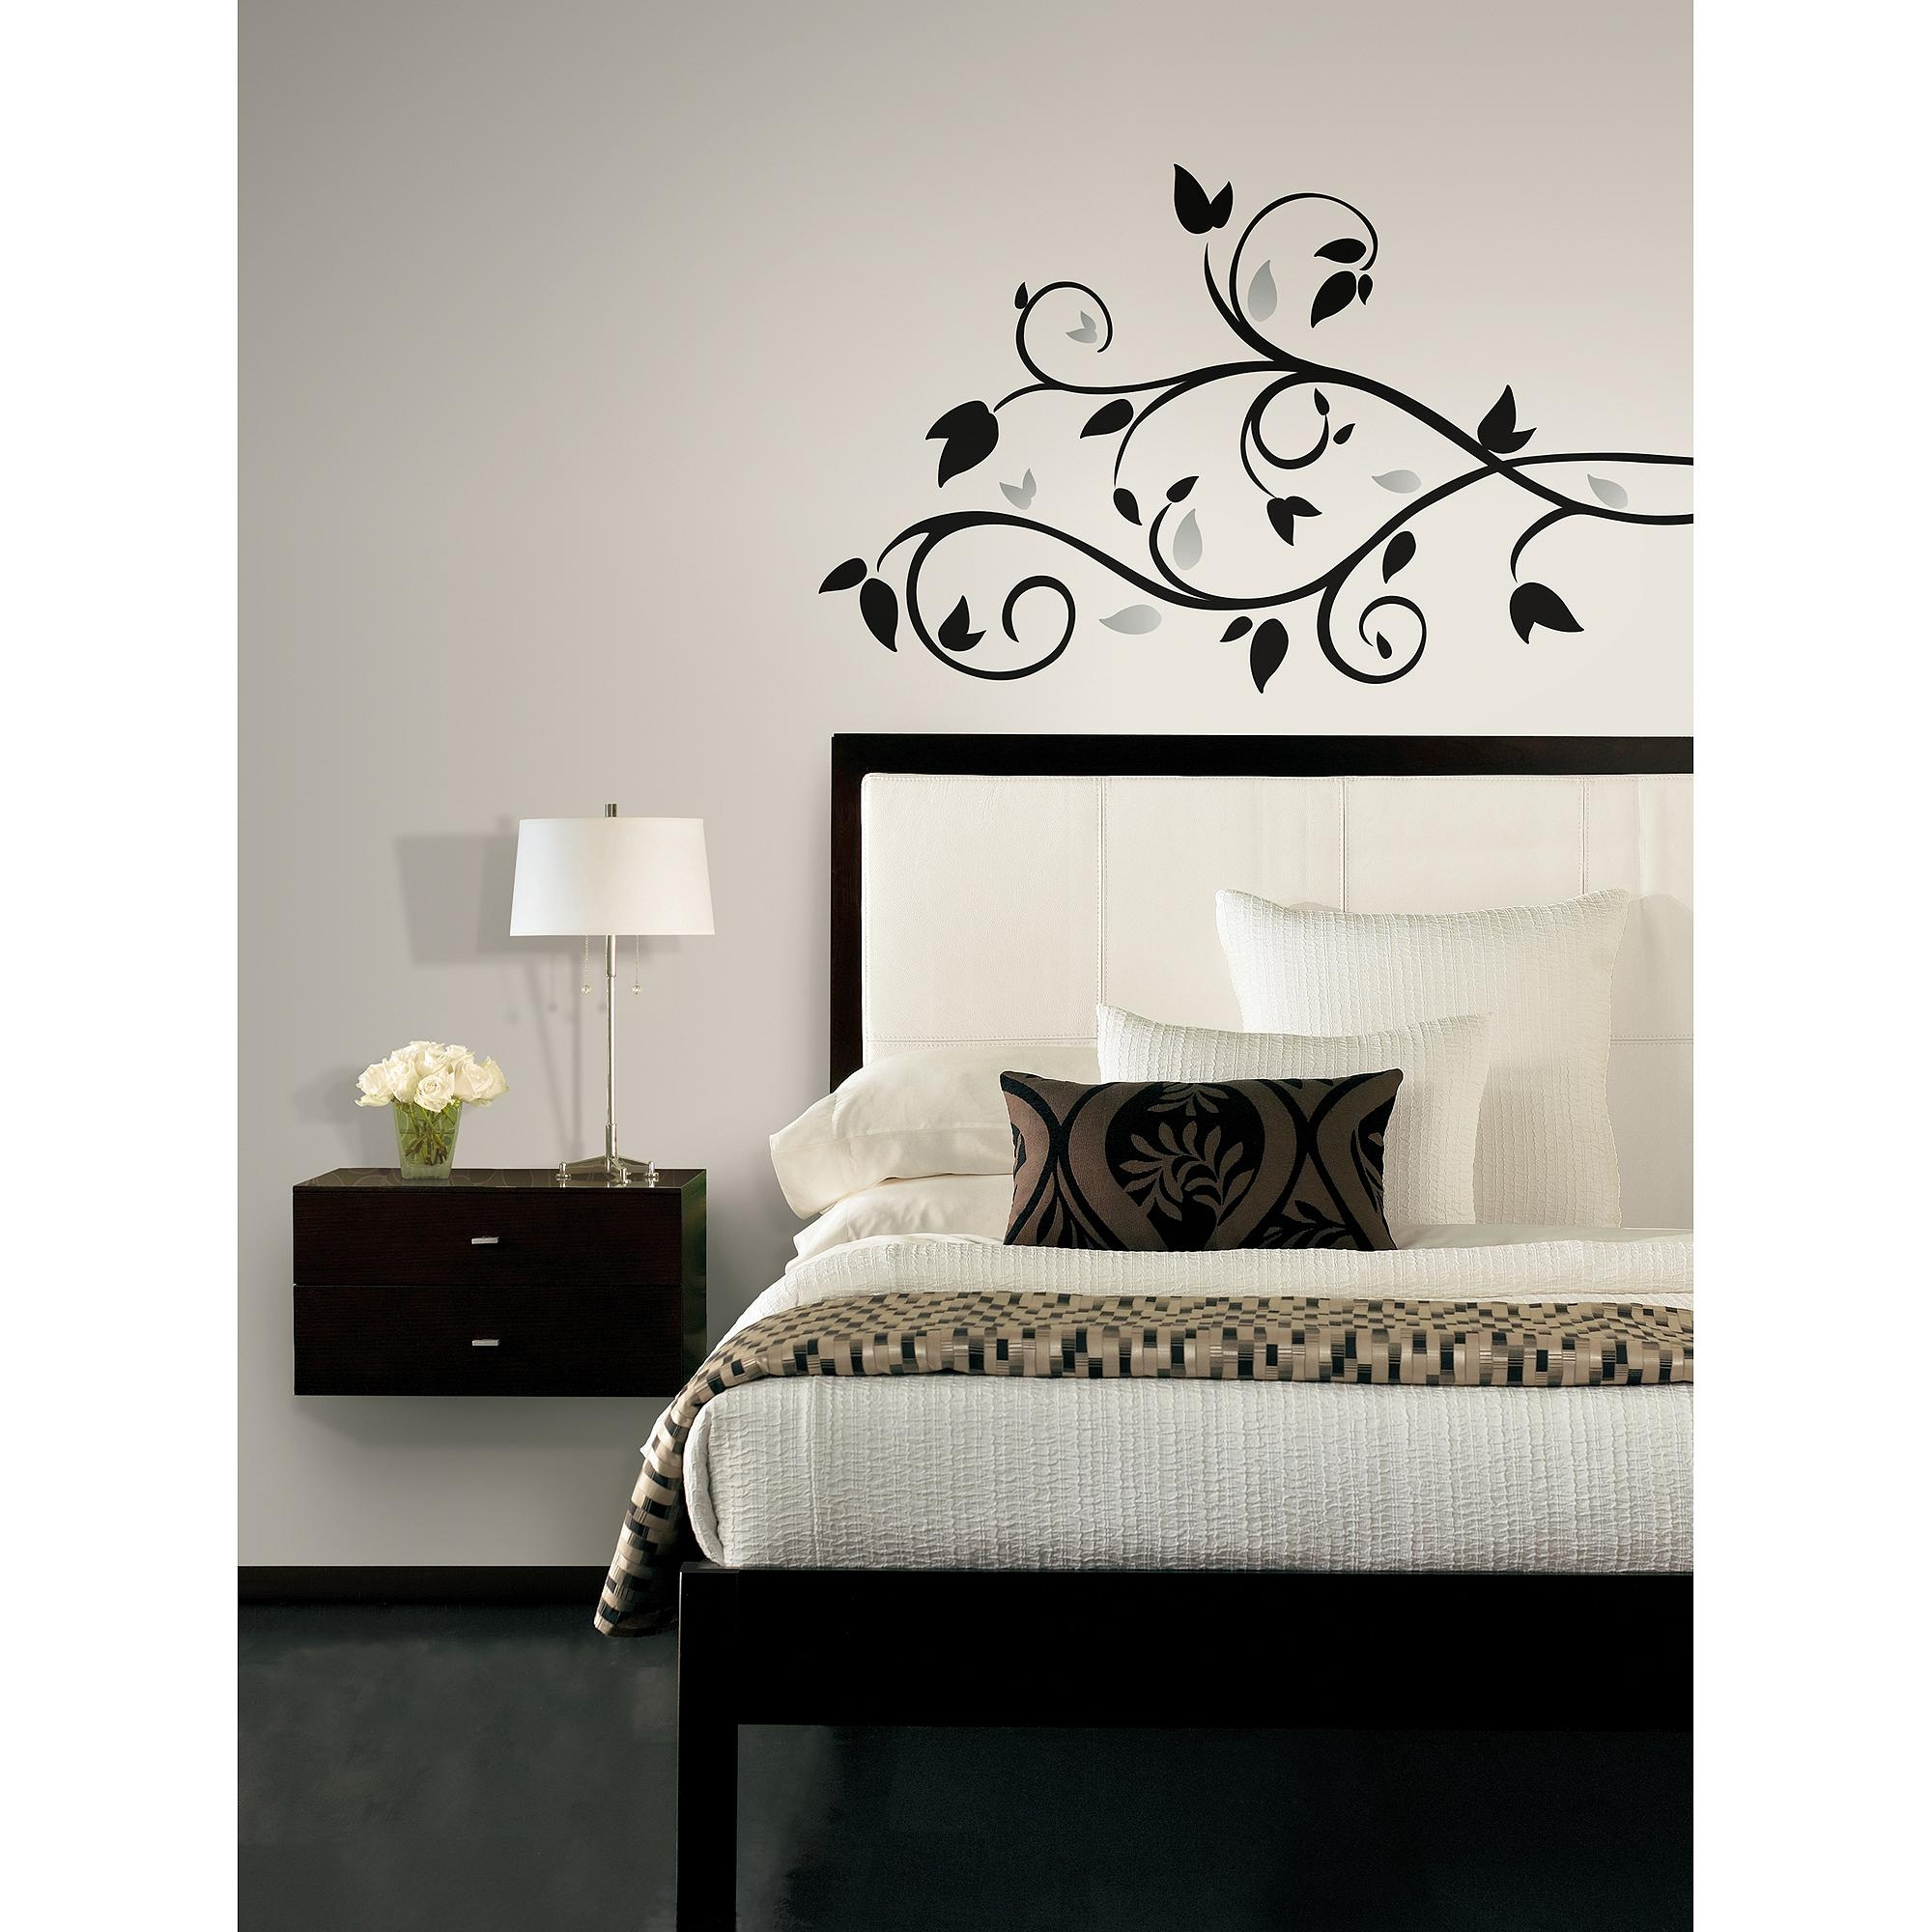 Roommates Foil Tree Branch Peel And Stick Wall Decal – Walmart Intended For Walmart Wall Stickers (Image 13 of 20)